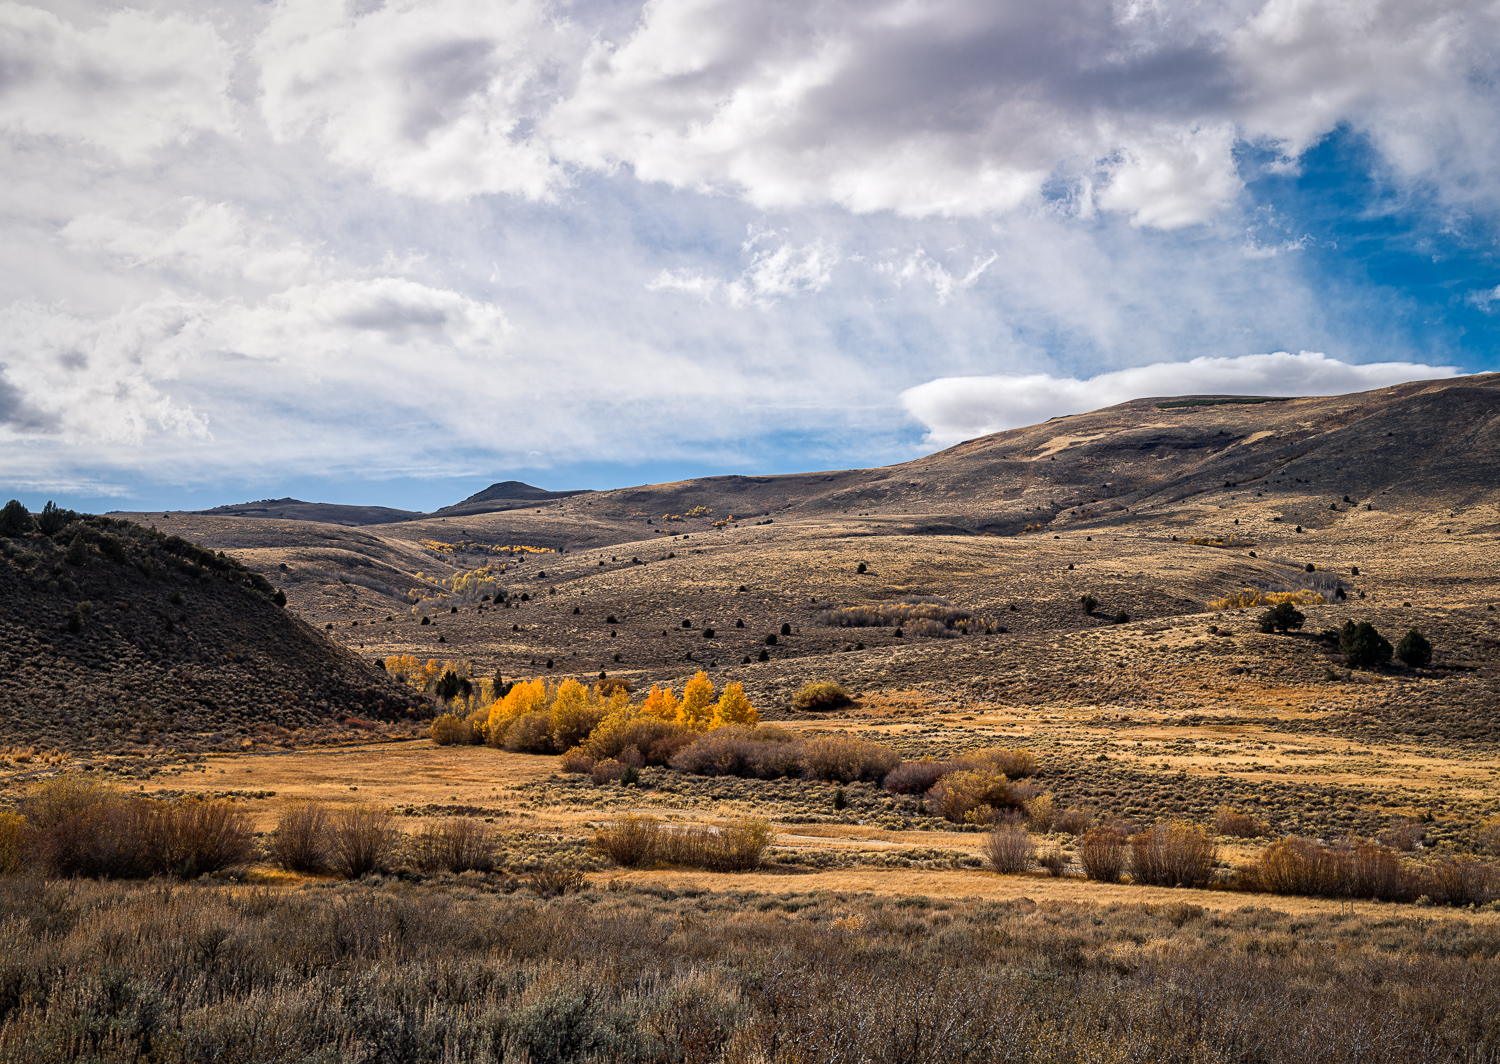 Heart Mountain Hot-springs: 15 image Panoramic Merger with Nikon D810 (Click Image to Enlarge)